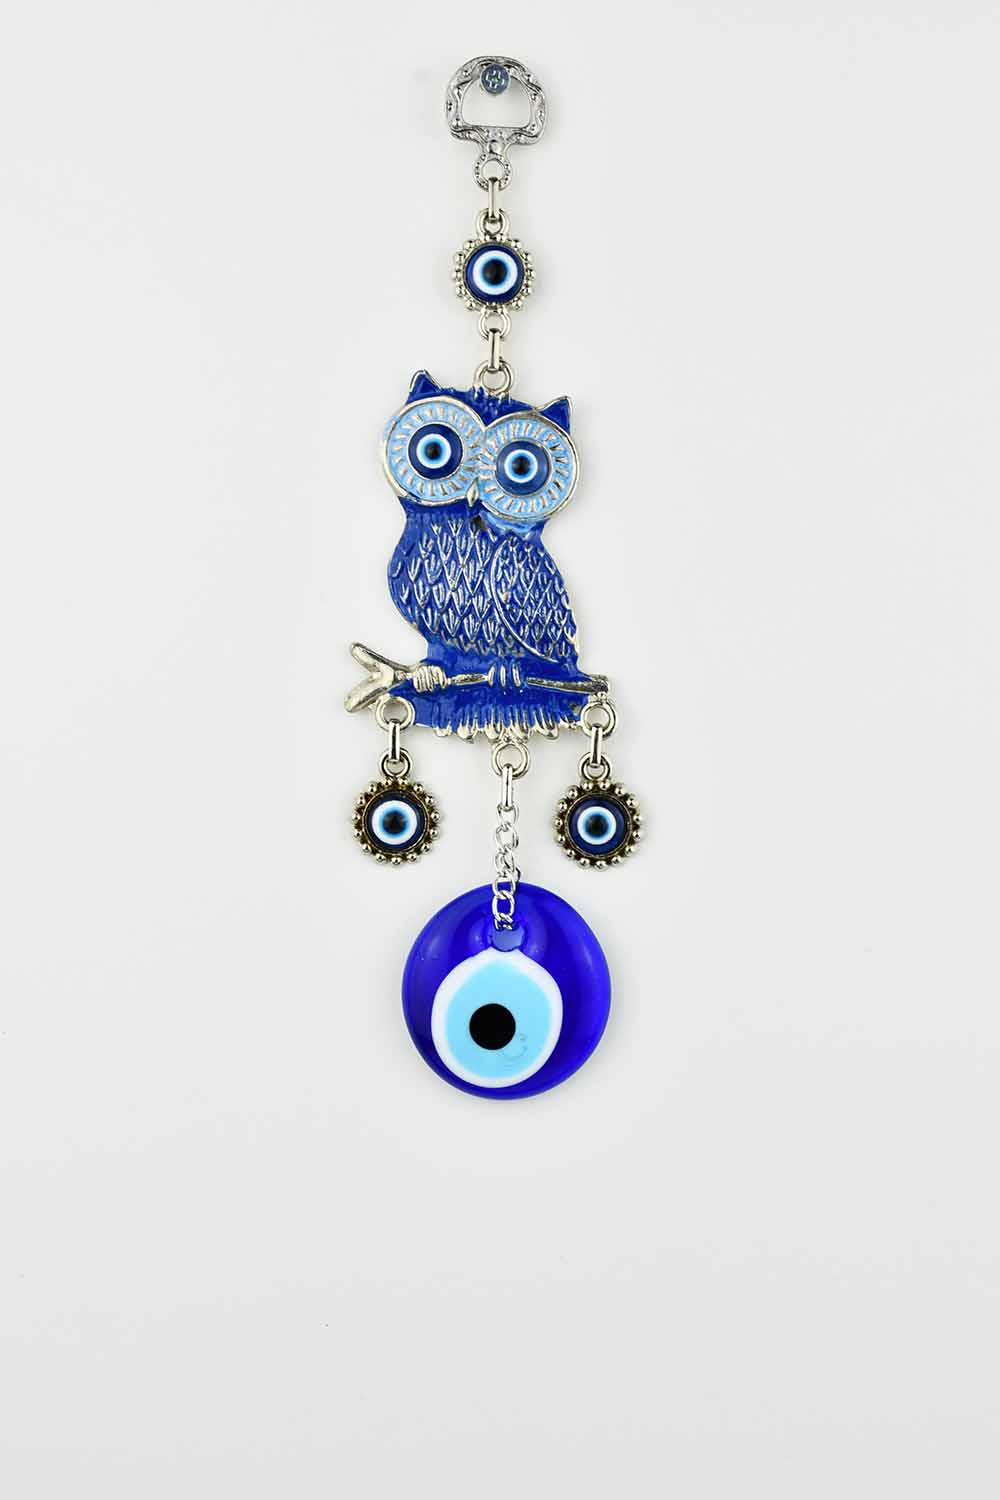 evil eye wall ornament in owl design handpainted in blue colour.